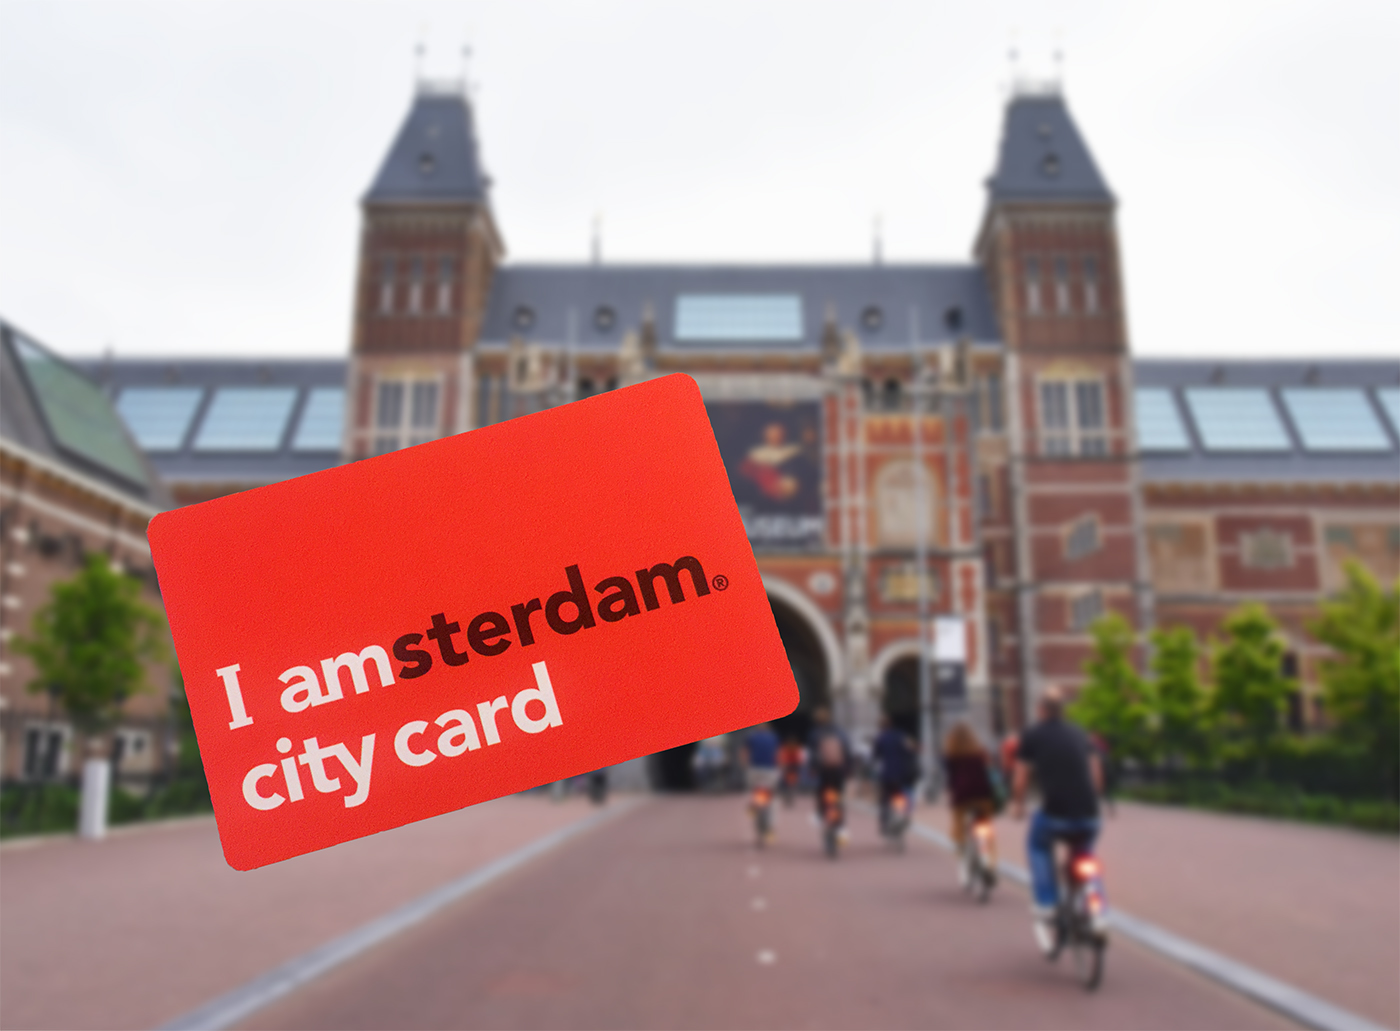 I amsterdam City Card jusxtaposed against the Rijksmuseum.